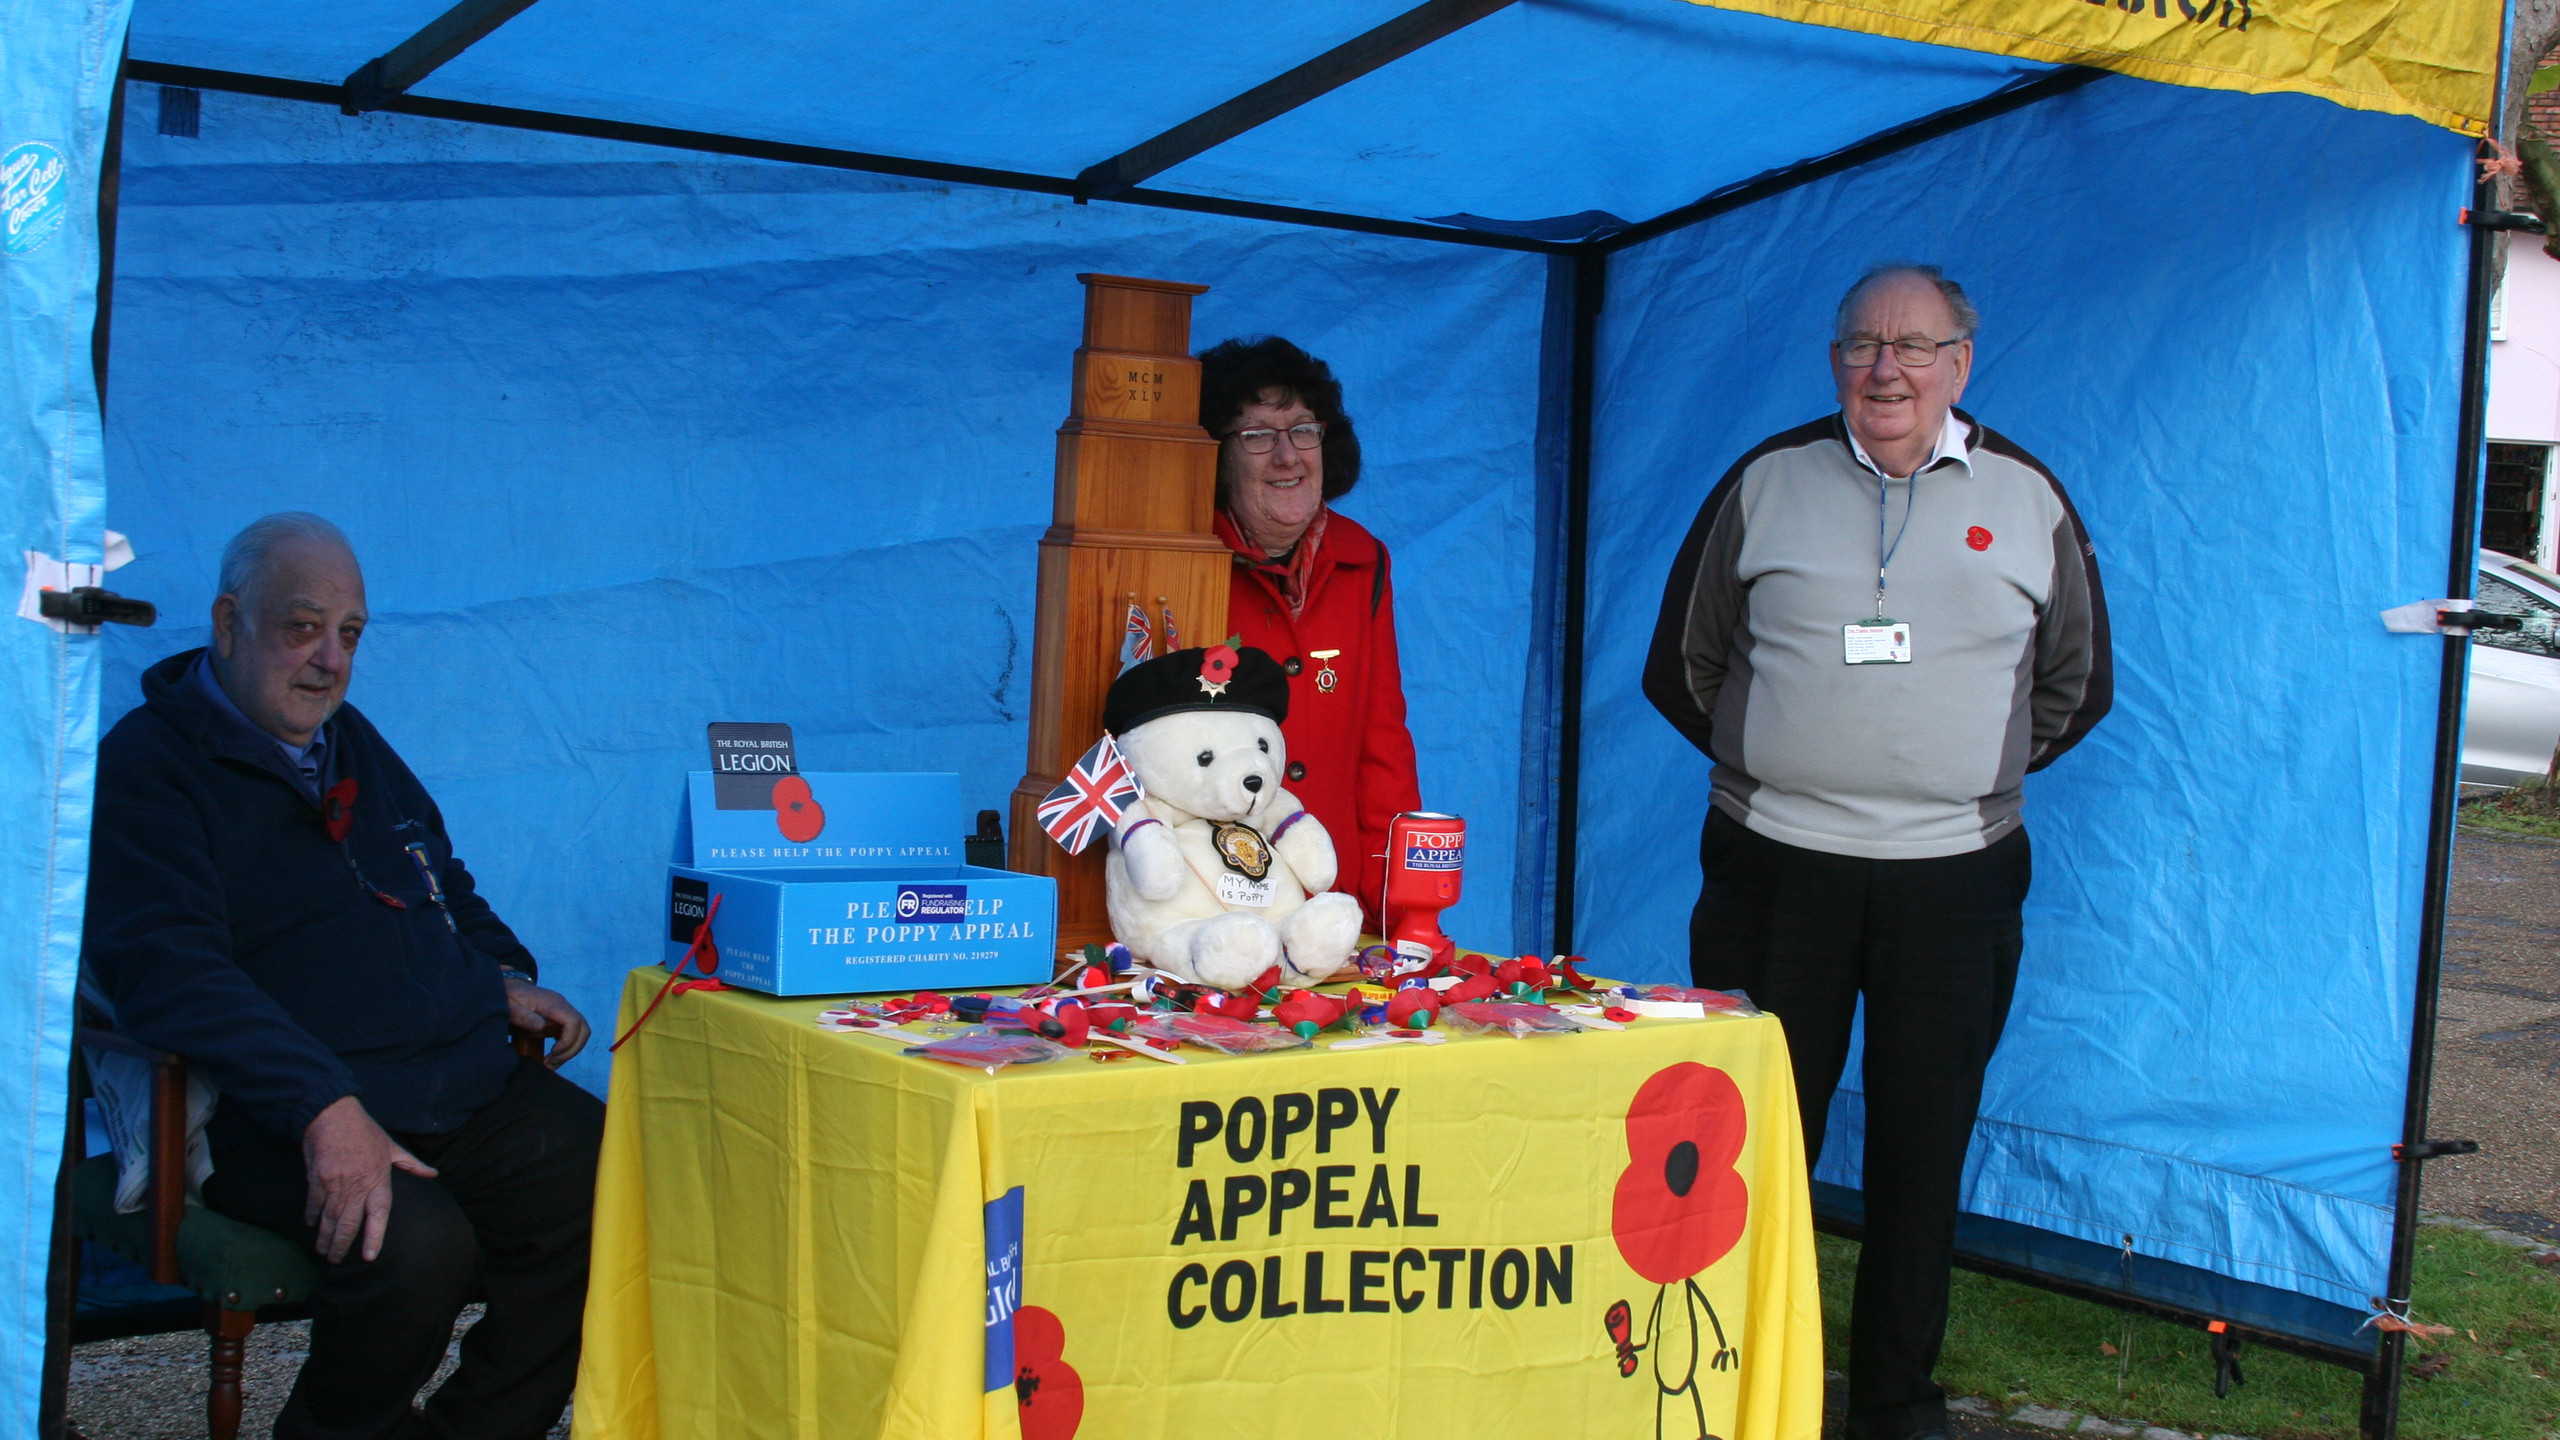 Poppy Appeal Collection in Wickham